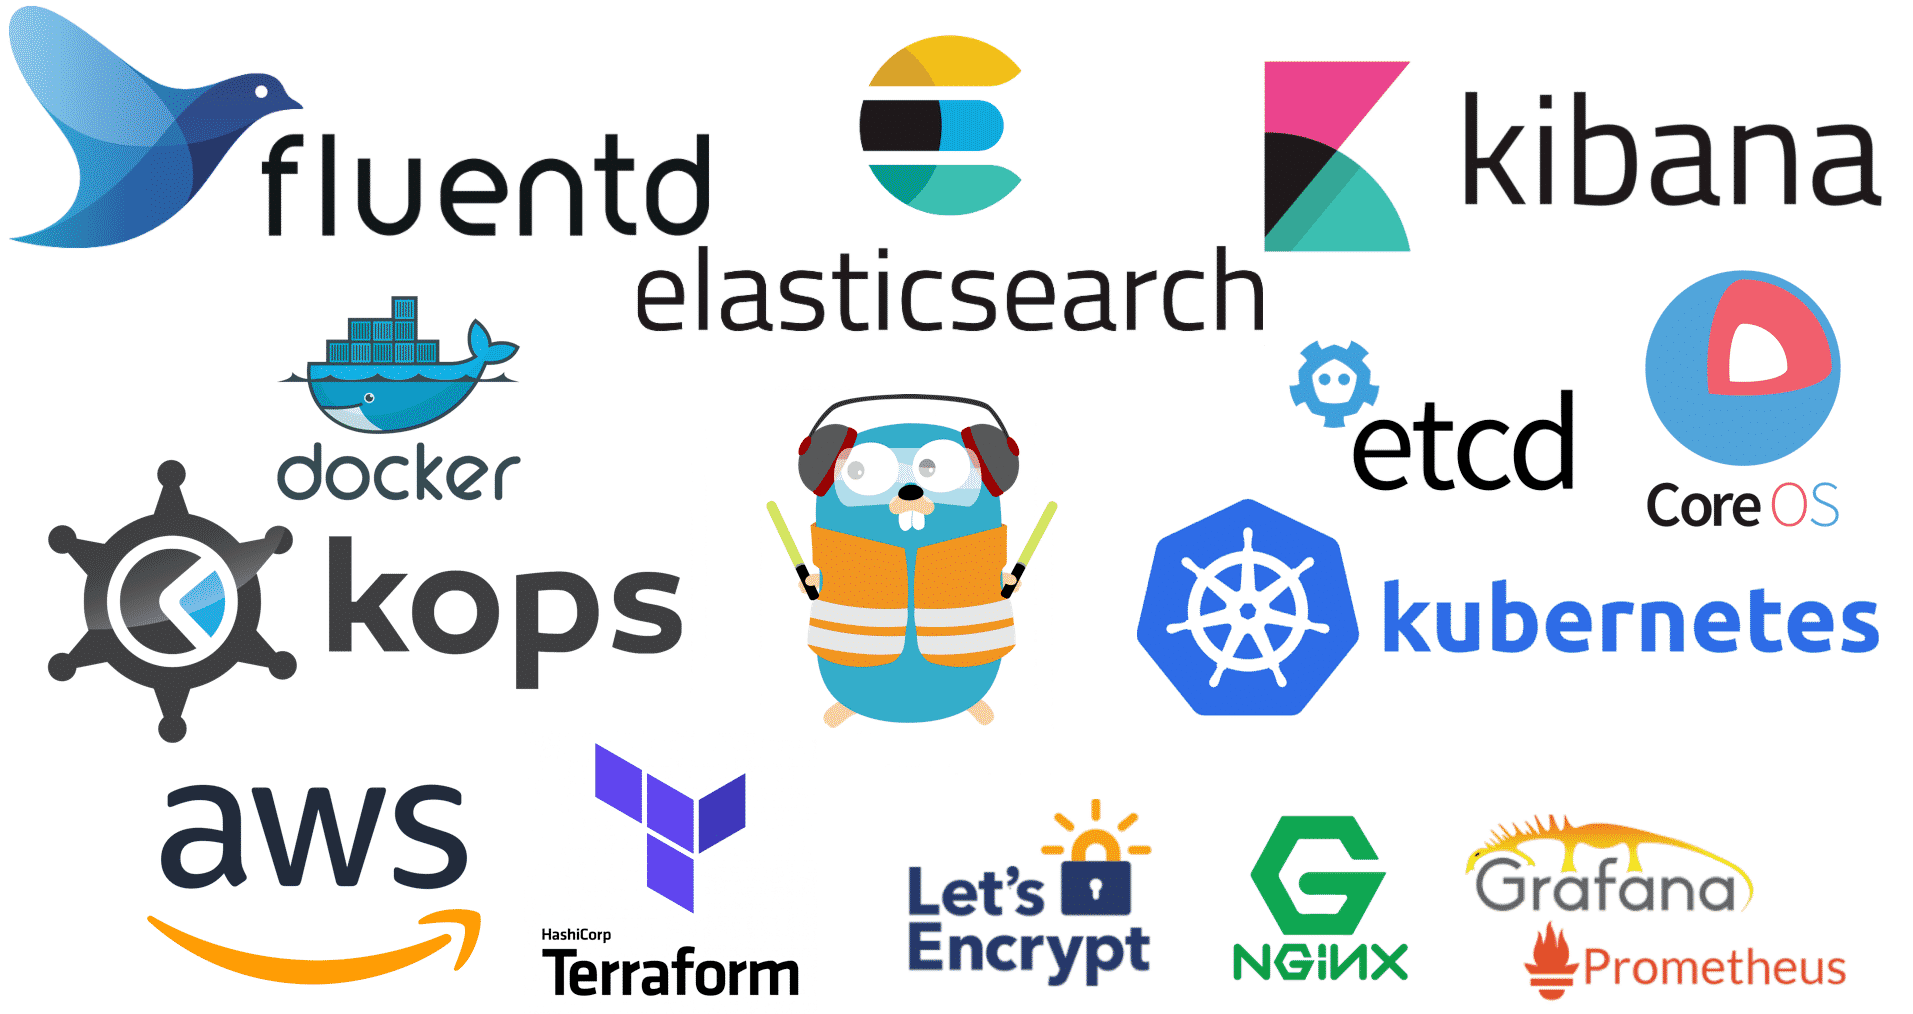 Kubernetes with kops and Traefik HA (Let's encrypt wildcard) + metrics prometheus + grafana-dashboards + efk stack + app1 + hpa testing.